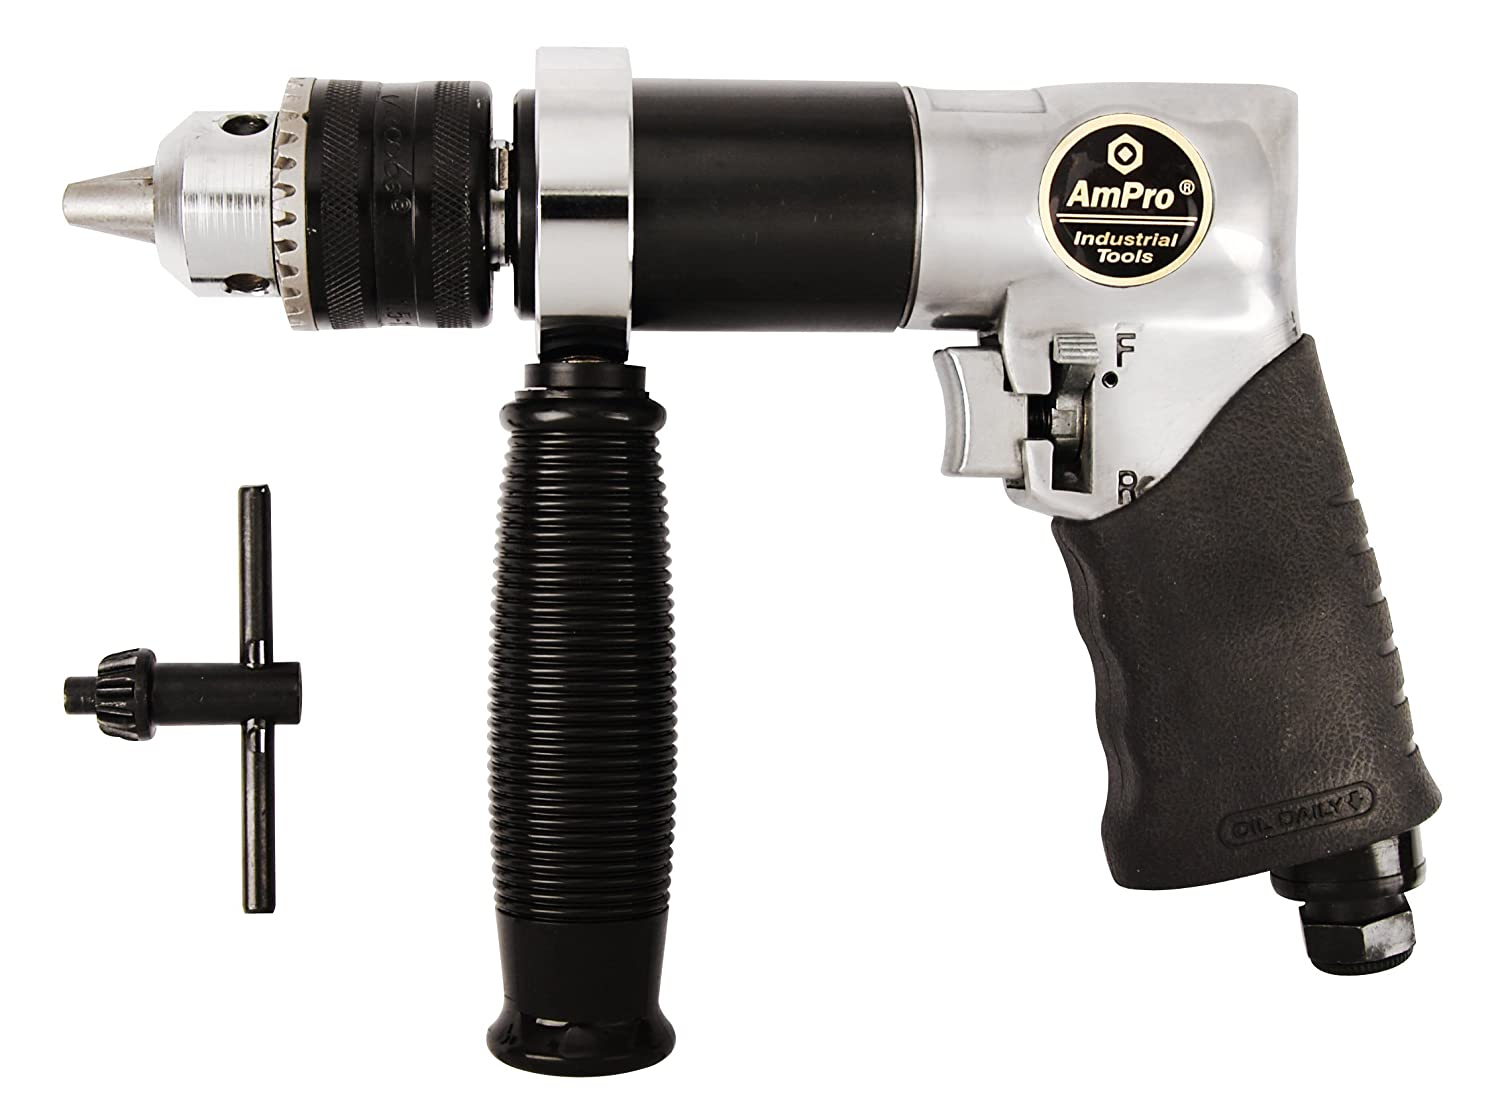 AMPRO A2440 1//2-Inch Heavy Duty Reversible Air Drill 800 RPM Ampro Industries